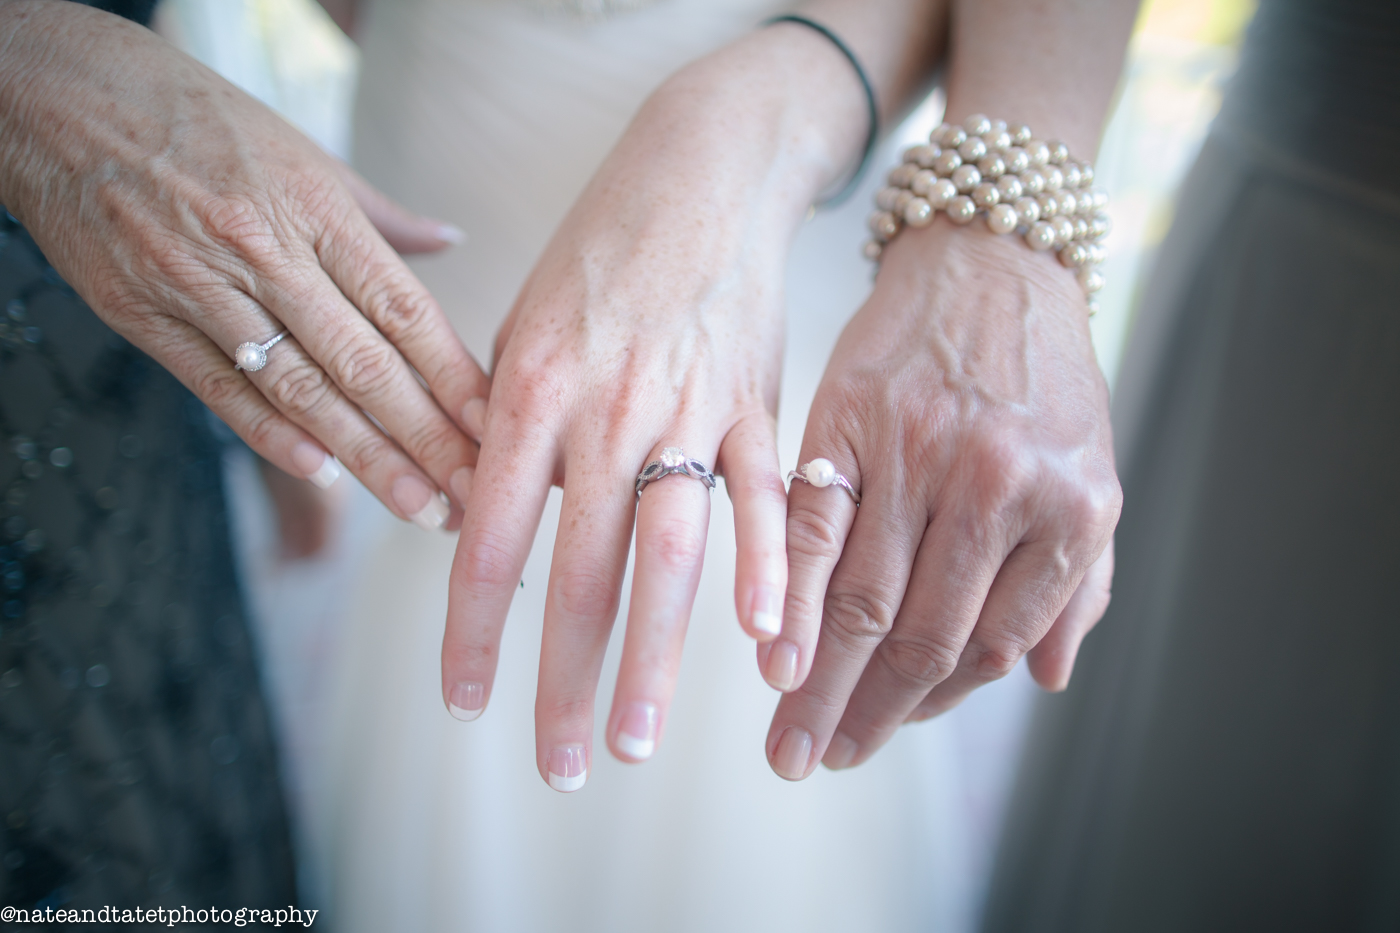 The Bride, Mother of the Bride and Mother of the Groom. The Mothers are both wearing the beautiful rings that the Bride had made for them as a special gift.